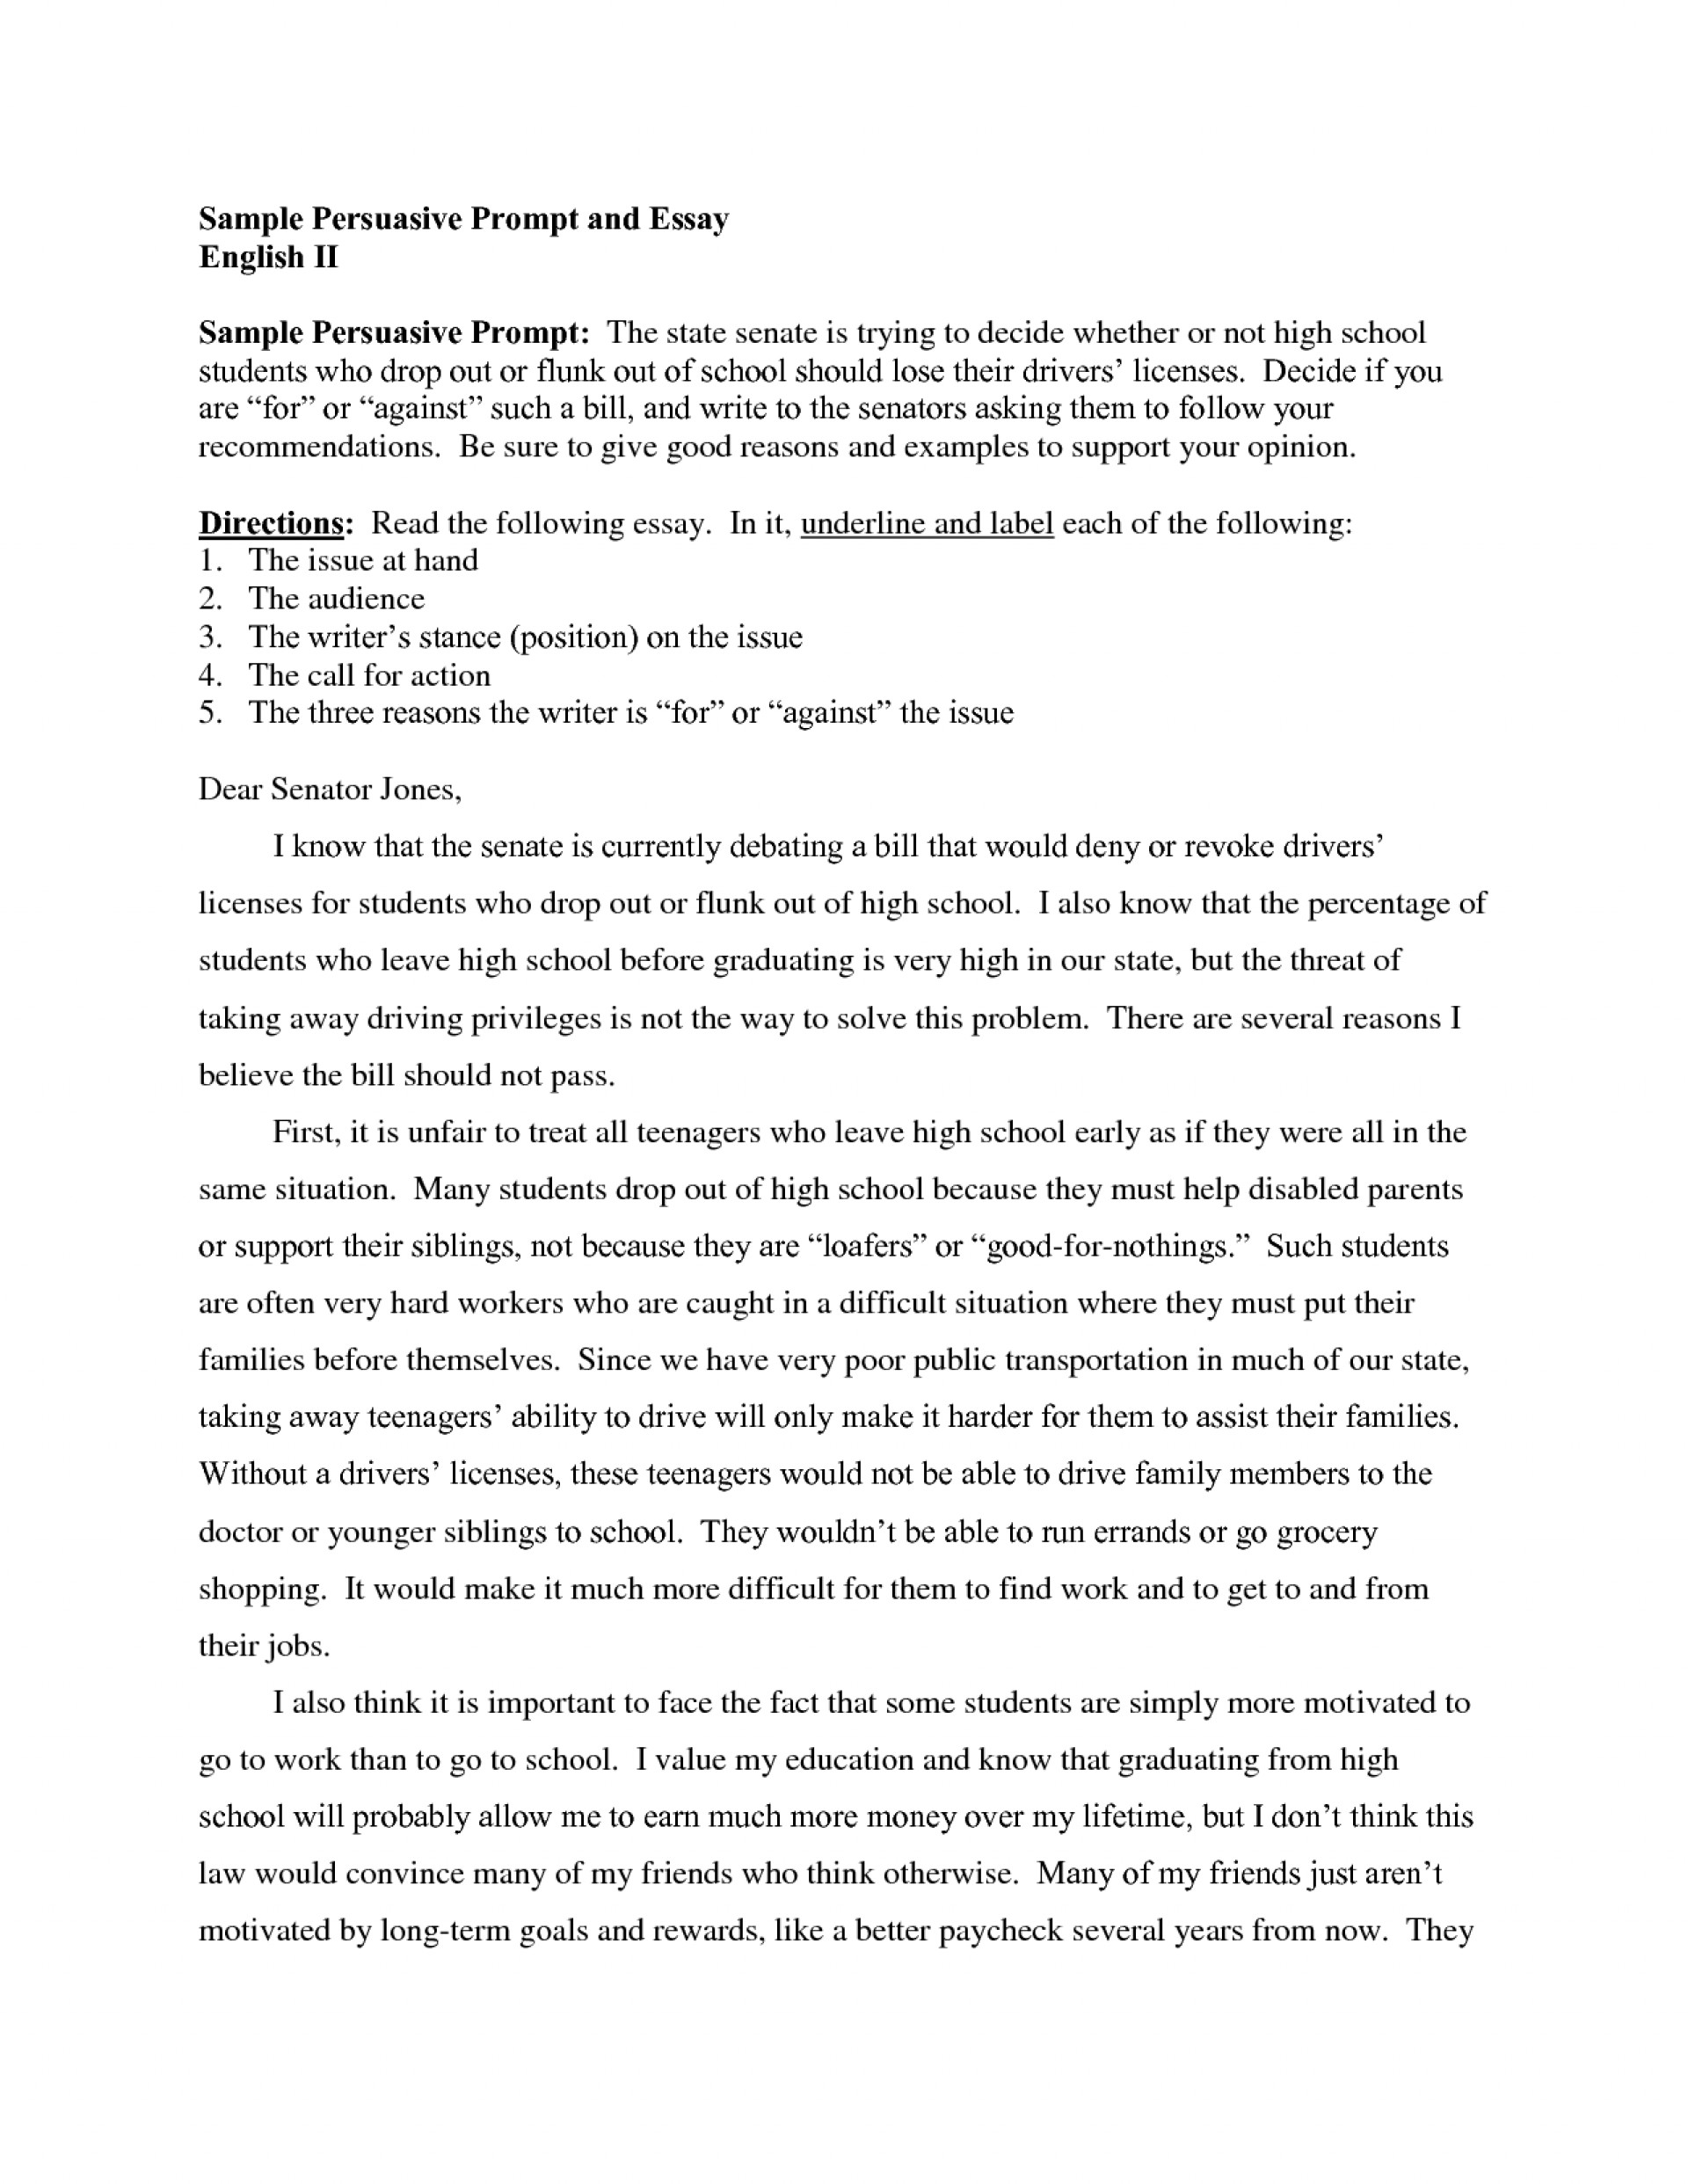 013 Research Paper Easy Topic Persuasive Essay Topics For High School Sample Ideas Highschool Students Good Prompt Funny Fun List Of Seniors Writing English Sensational Psychology World History 1920